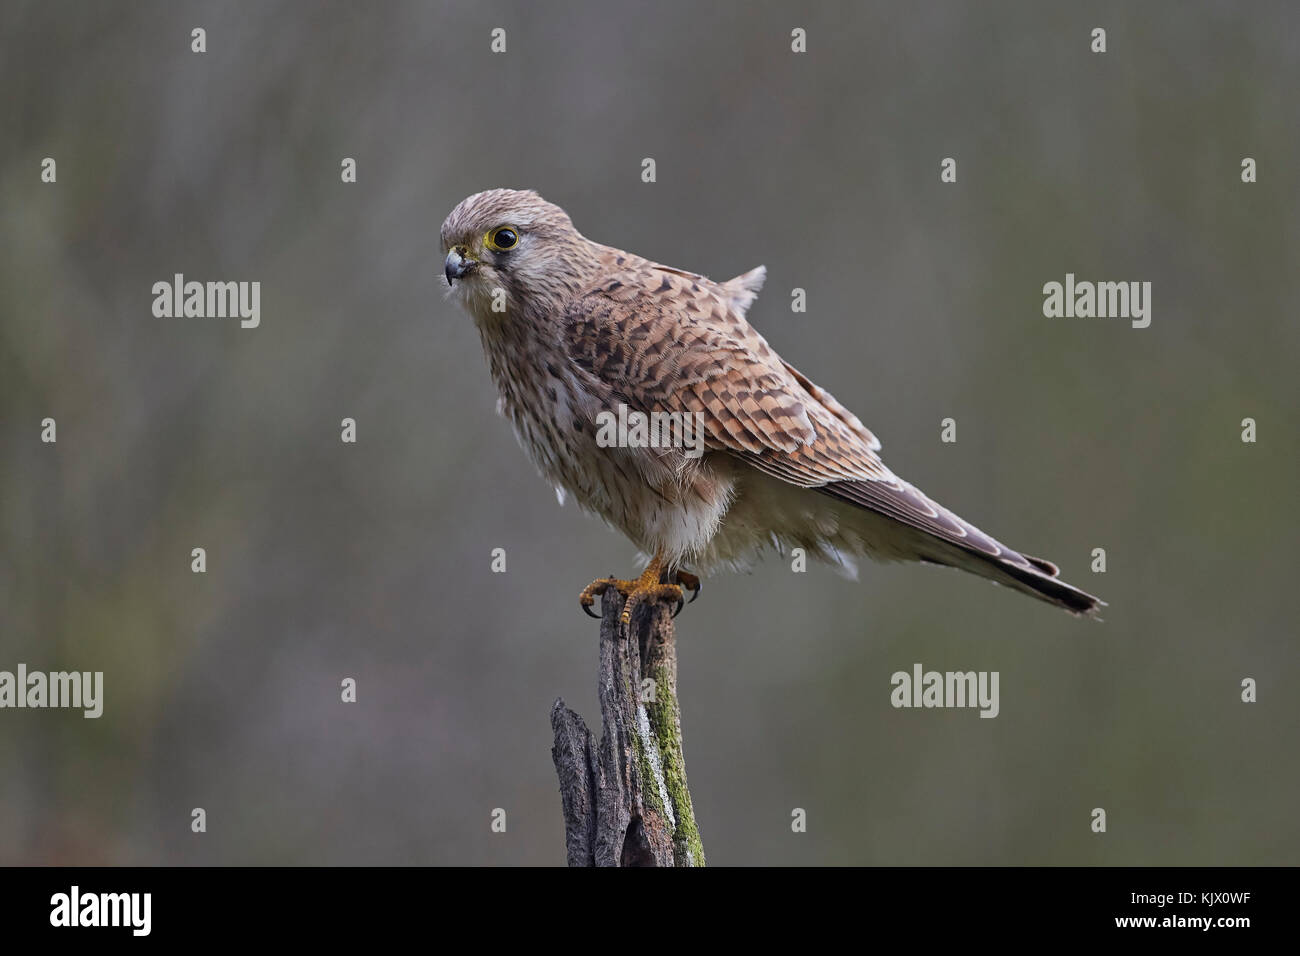 Kestrel, Falco tinnunculus, resting on a wooden perch, East Yorkshire, UK. - Stock Image